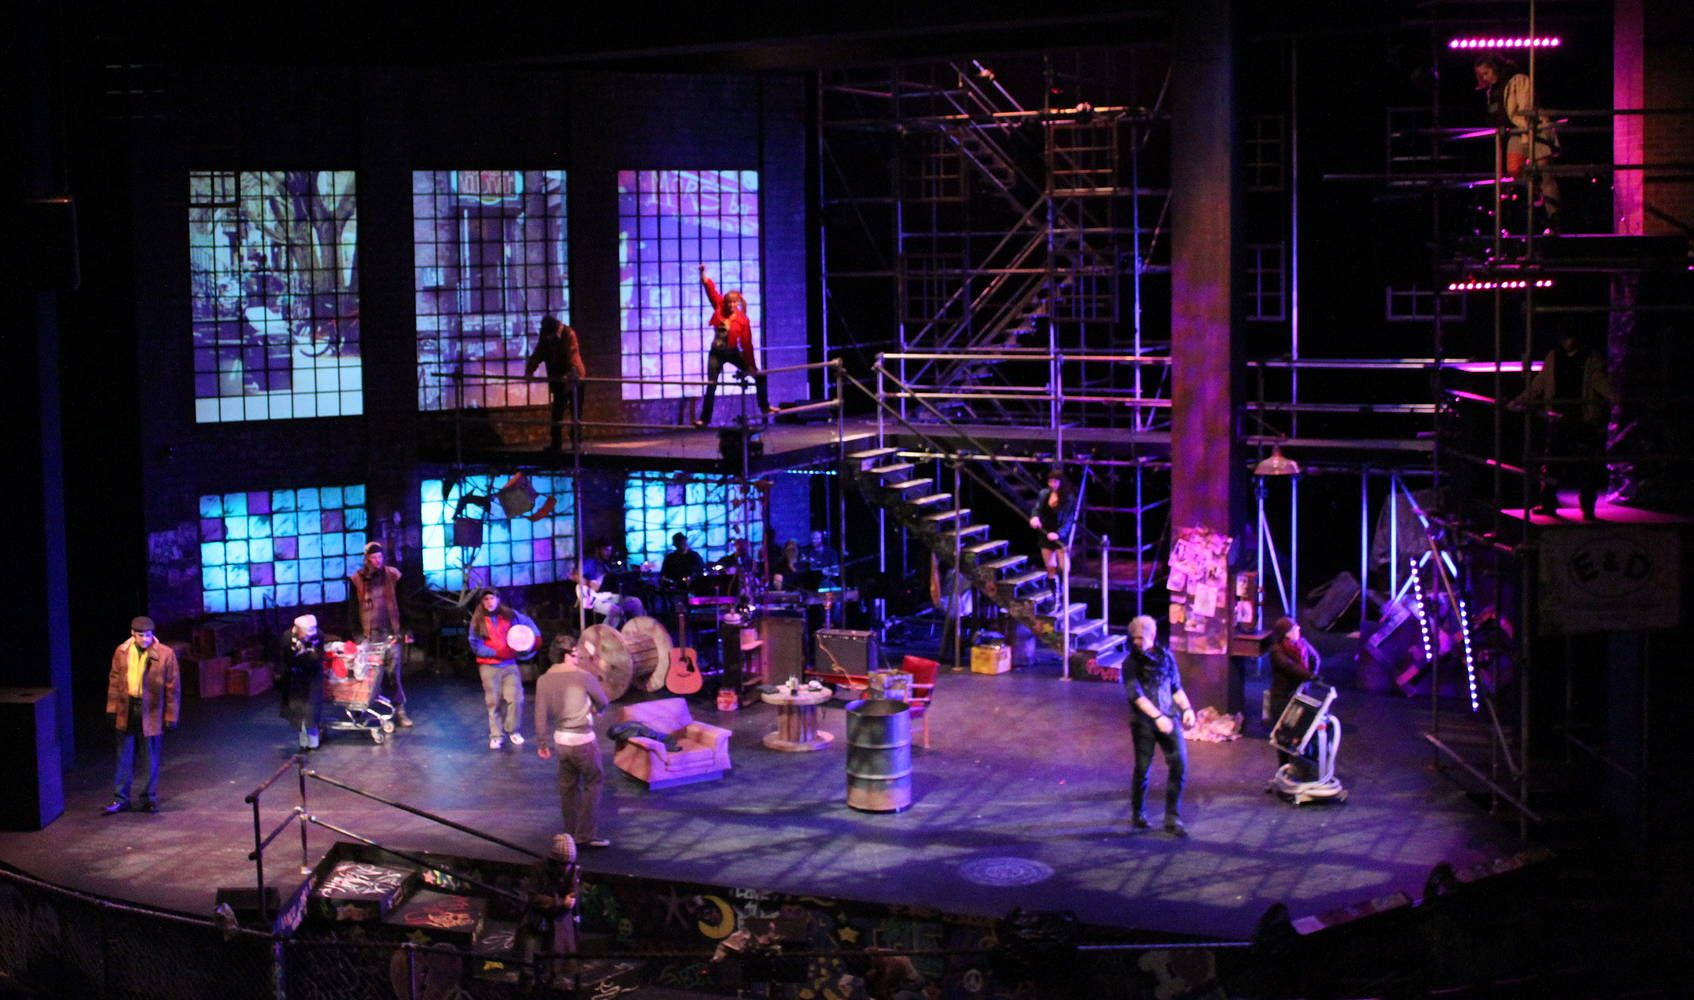 Set Design For Rent The Musical Google Search Theatre Set Scenic Design Rent Musical